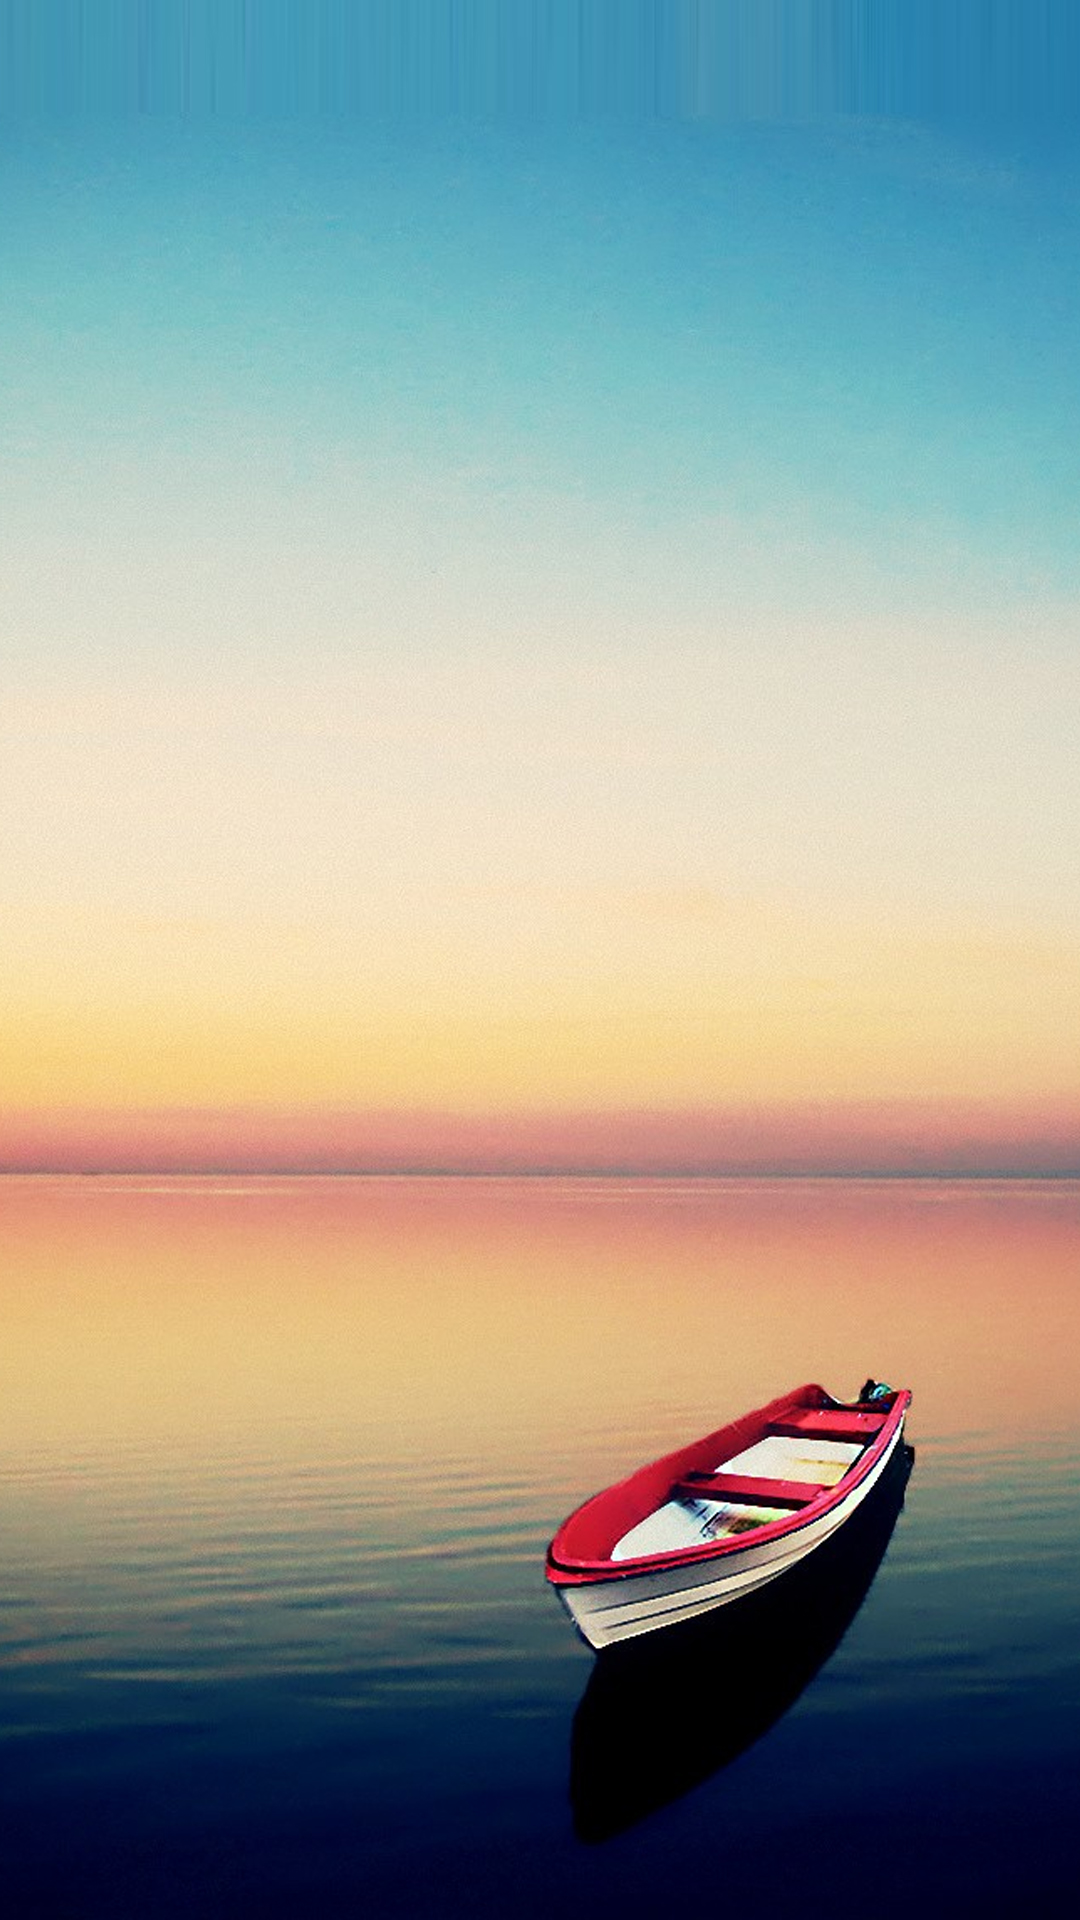 Boat at Sunset Smartphone HD Wallpapers